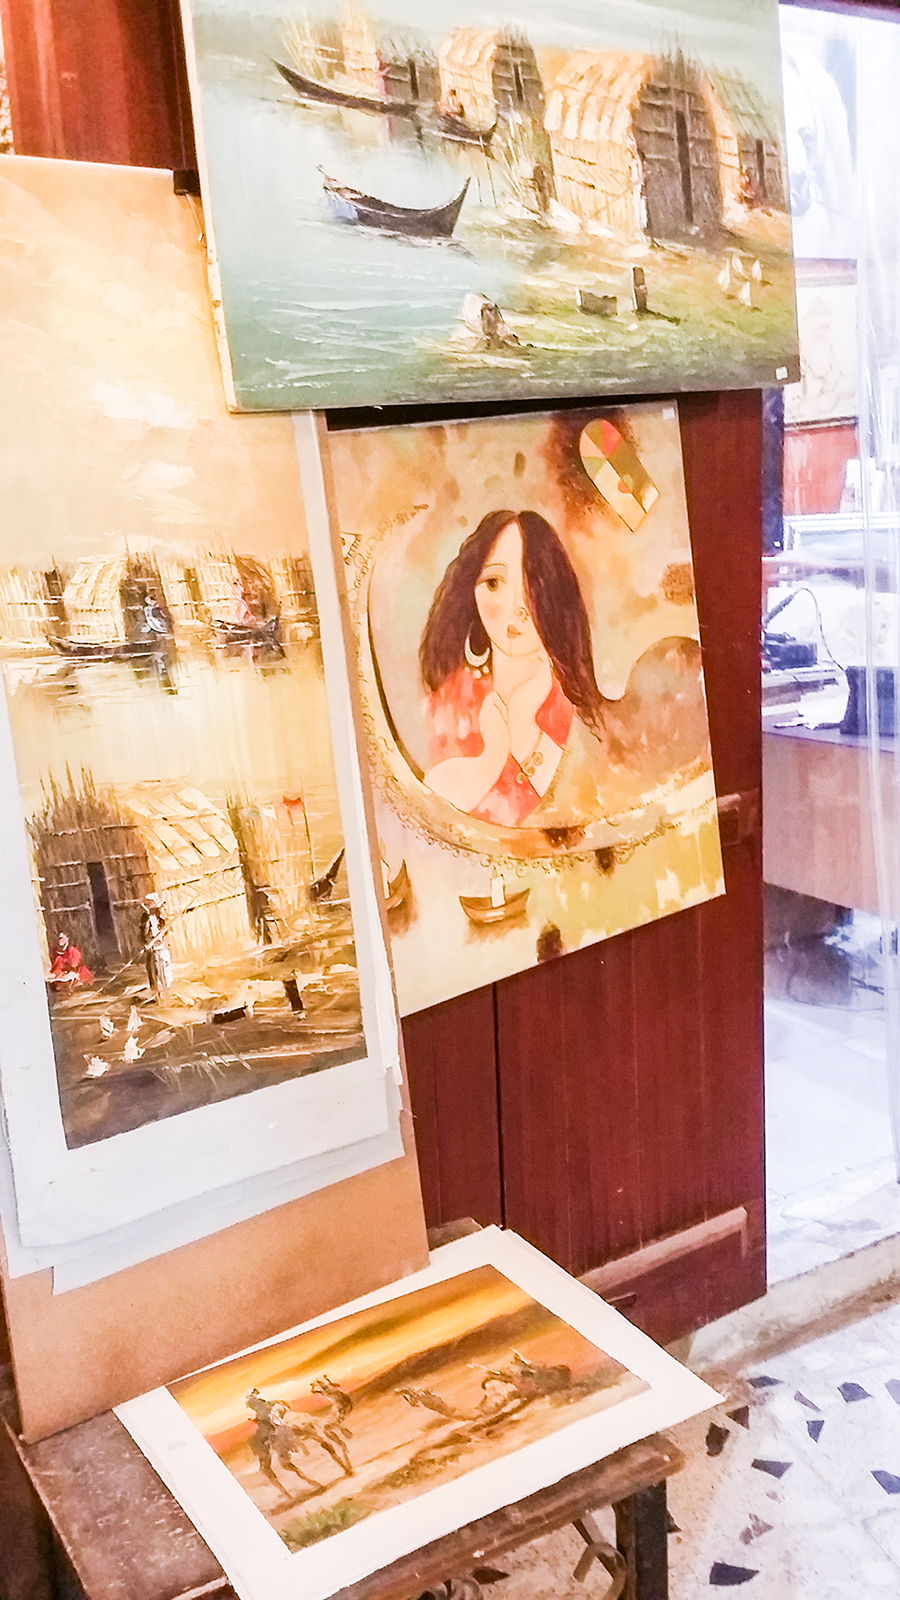 Paintings on sale at Souq Waqif (سوق واقف), Doha, Qatar.